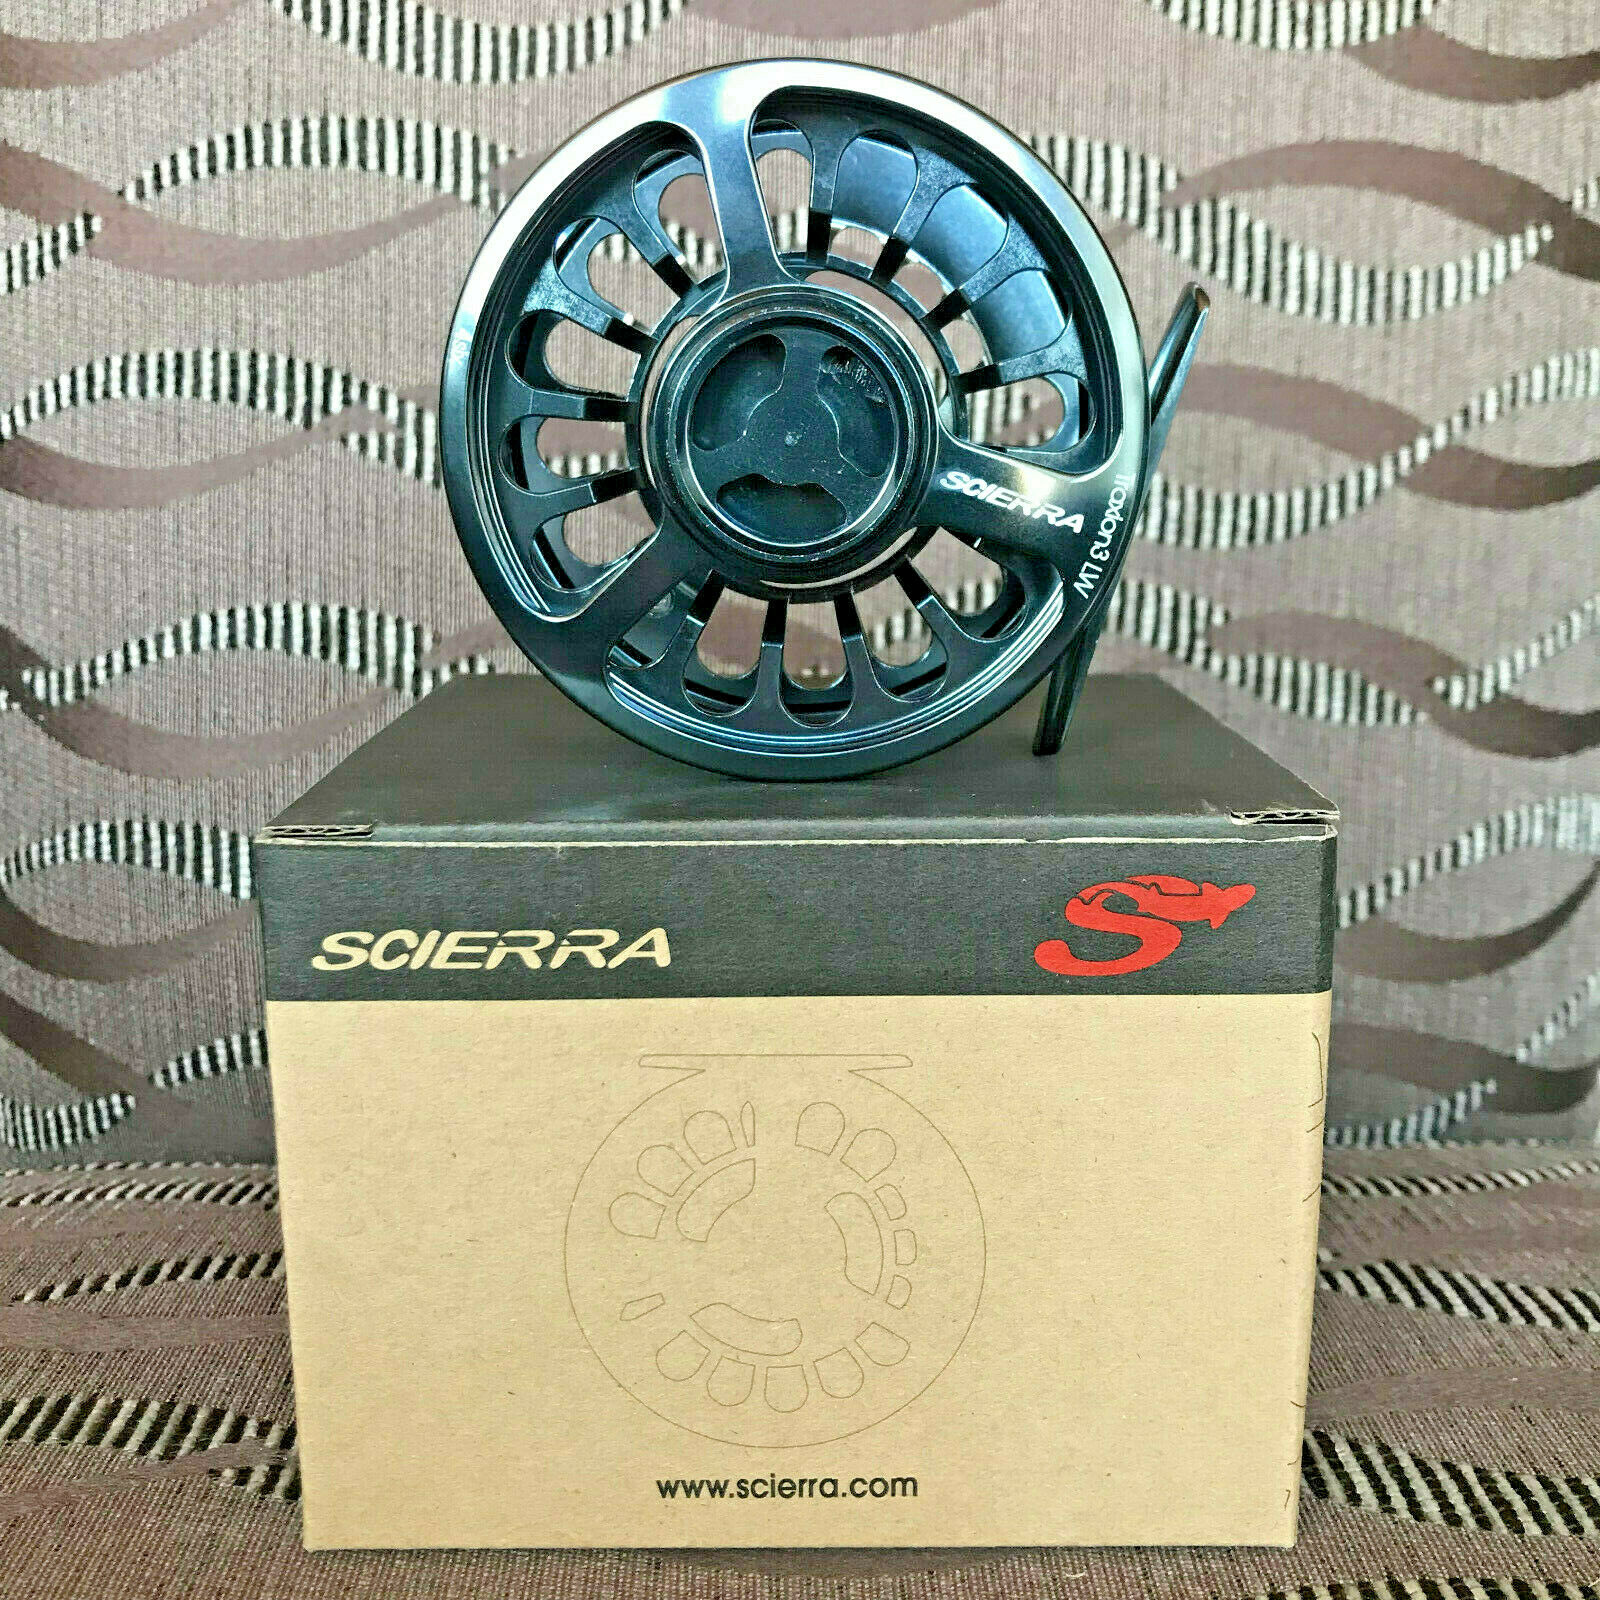 Scierra Traxion 3 LW fly Reel  4 6 Gunsmoke moscas papel